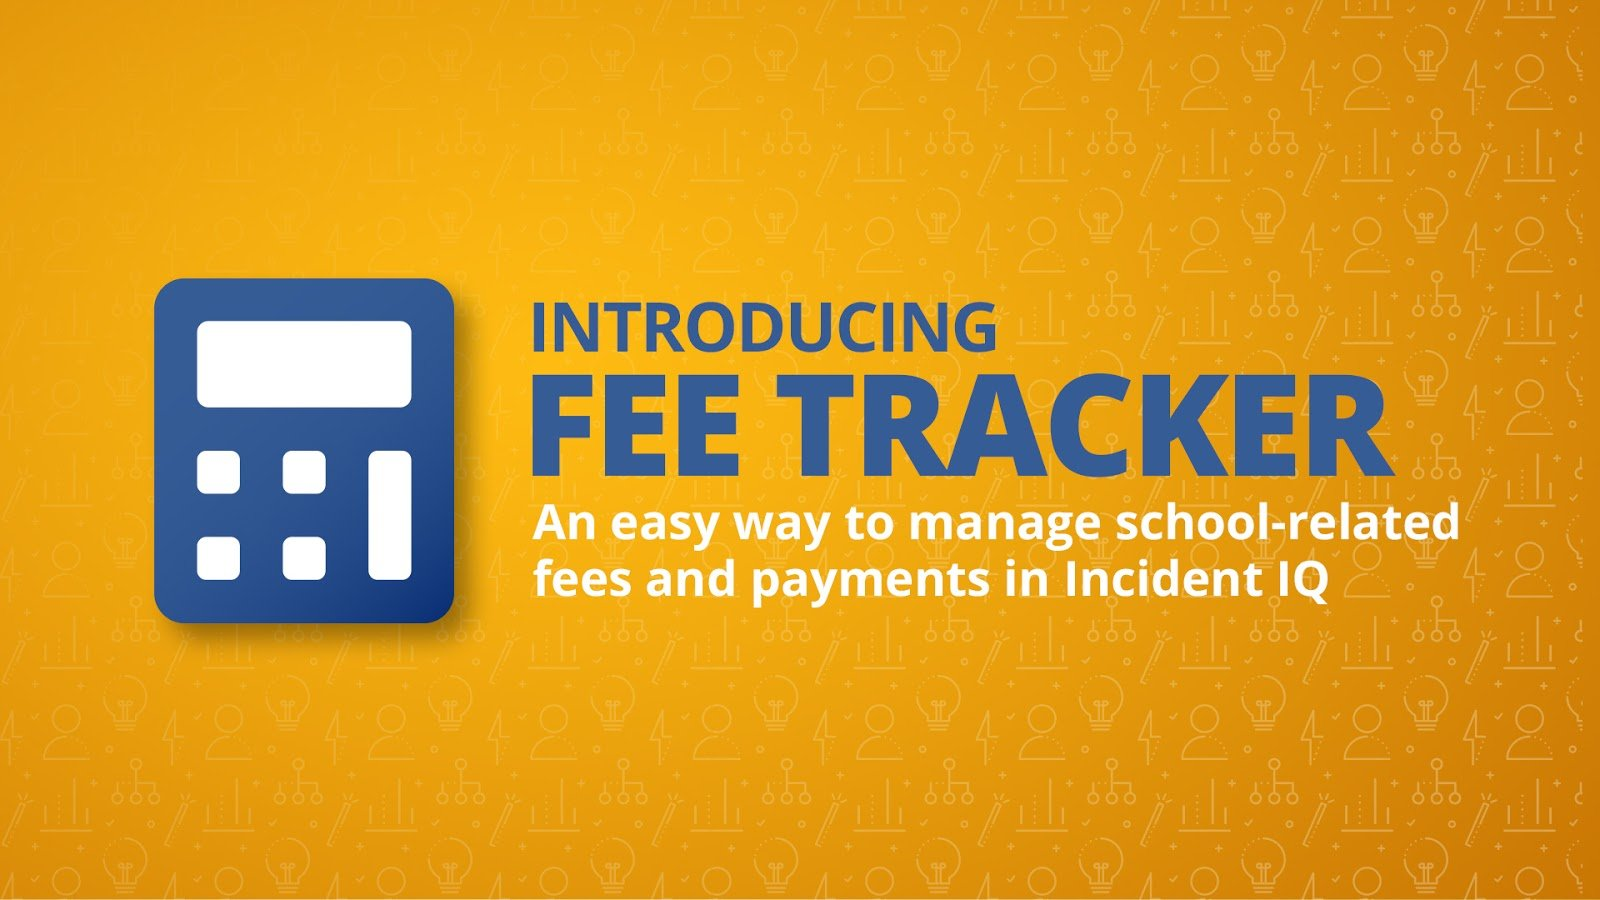 Incident IQ Releases New App to Help K-12 School Districts Manage Fees, Fines and Payments